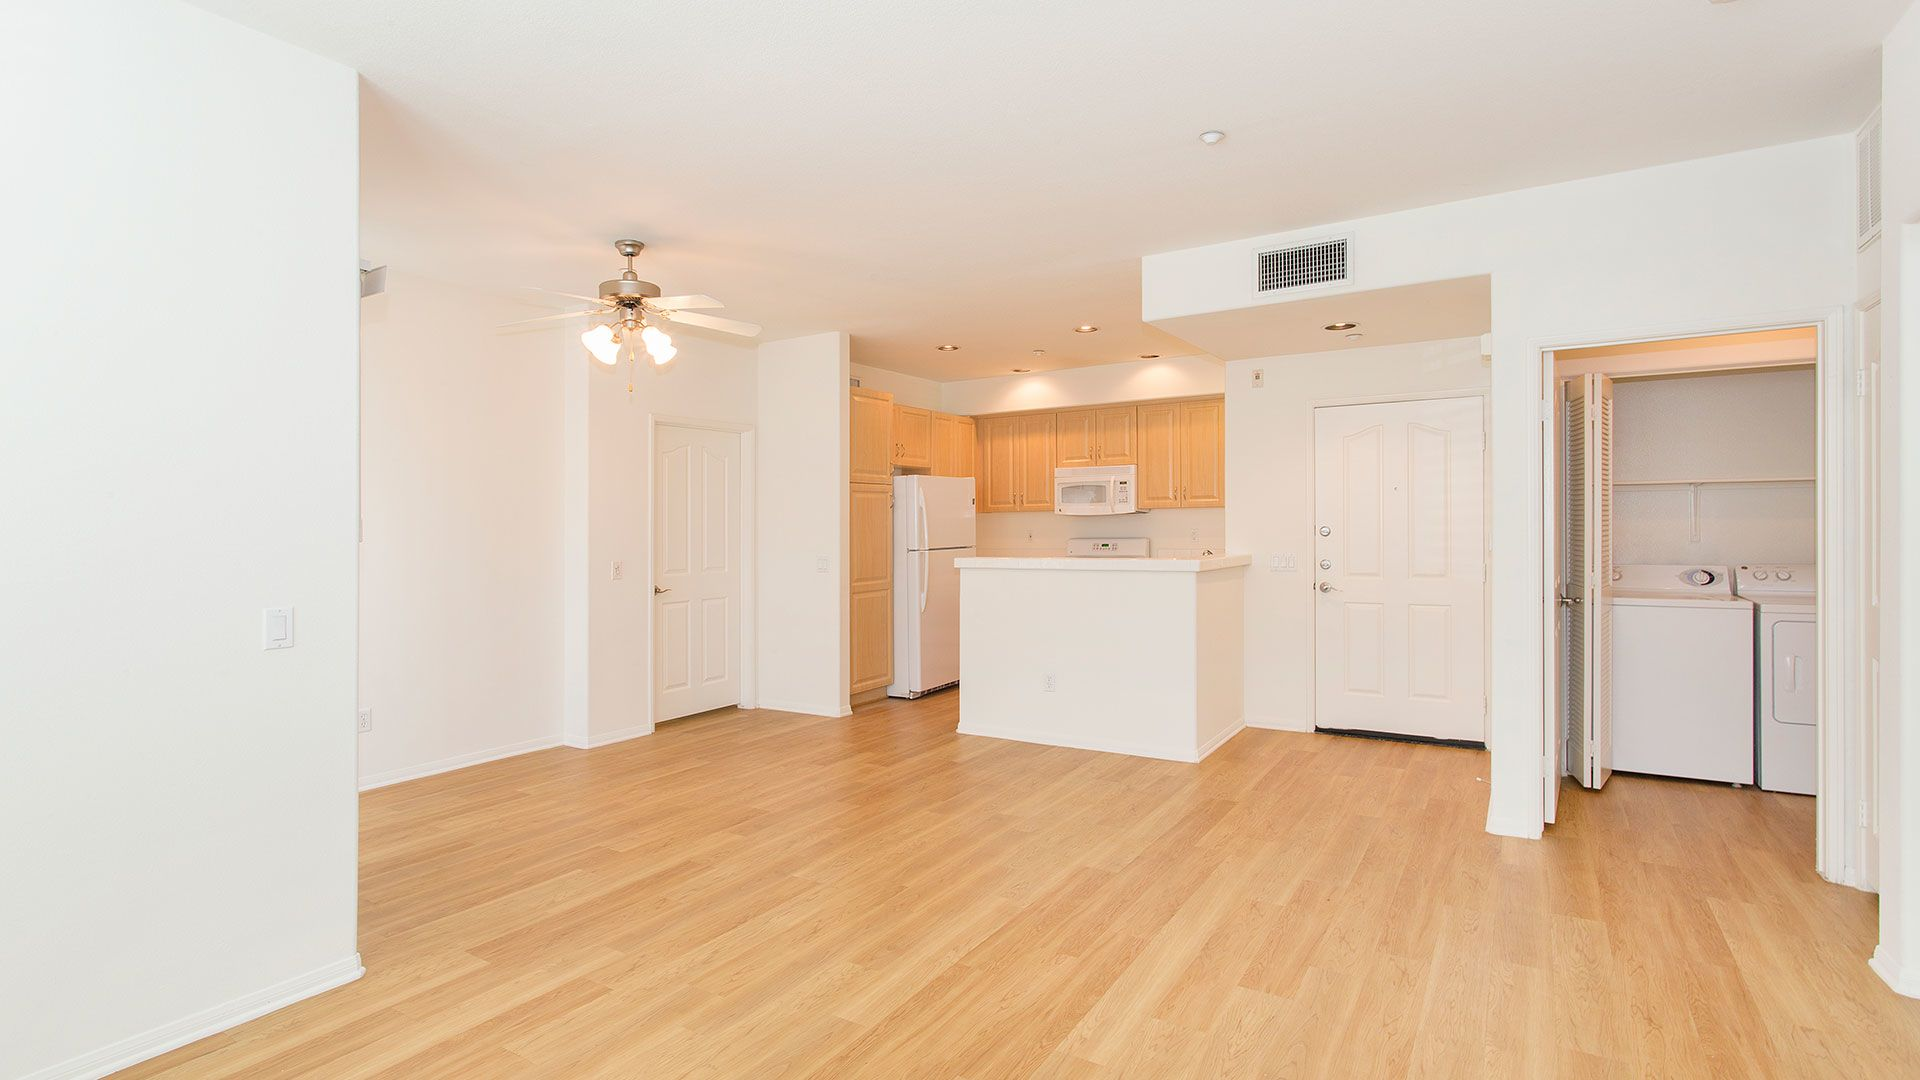 Via Ventura Apartments - Living Room, Kitchen and In-home Washer/Dryer